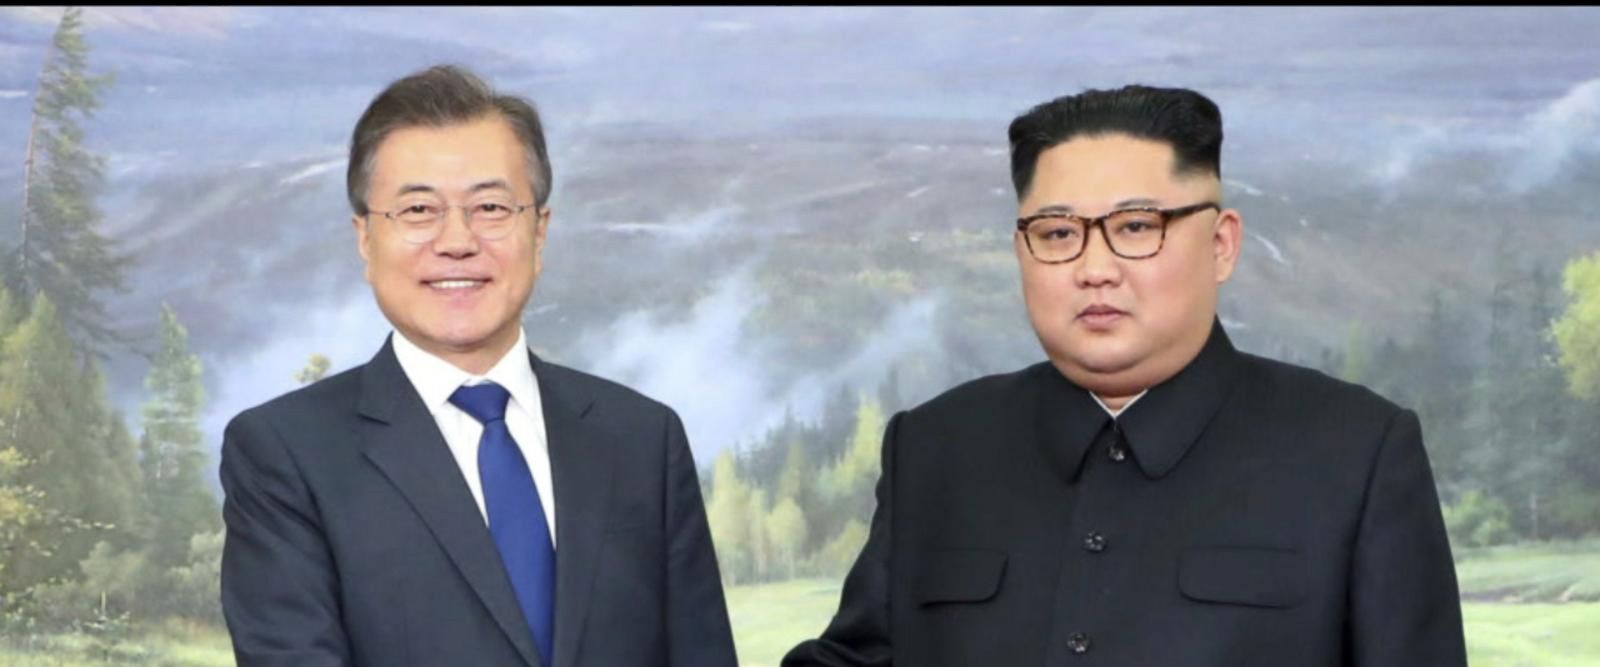 VIDEO: Kim Jong Un and South Korean president Moon Jae-in embrace warmly in meeting